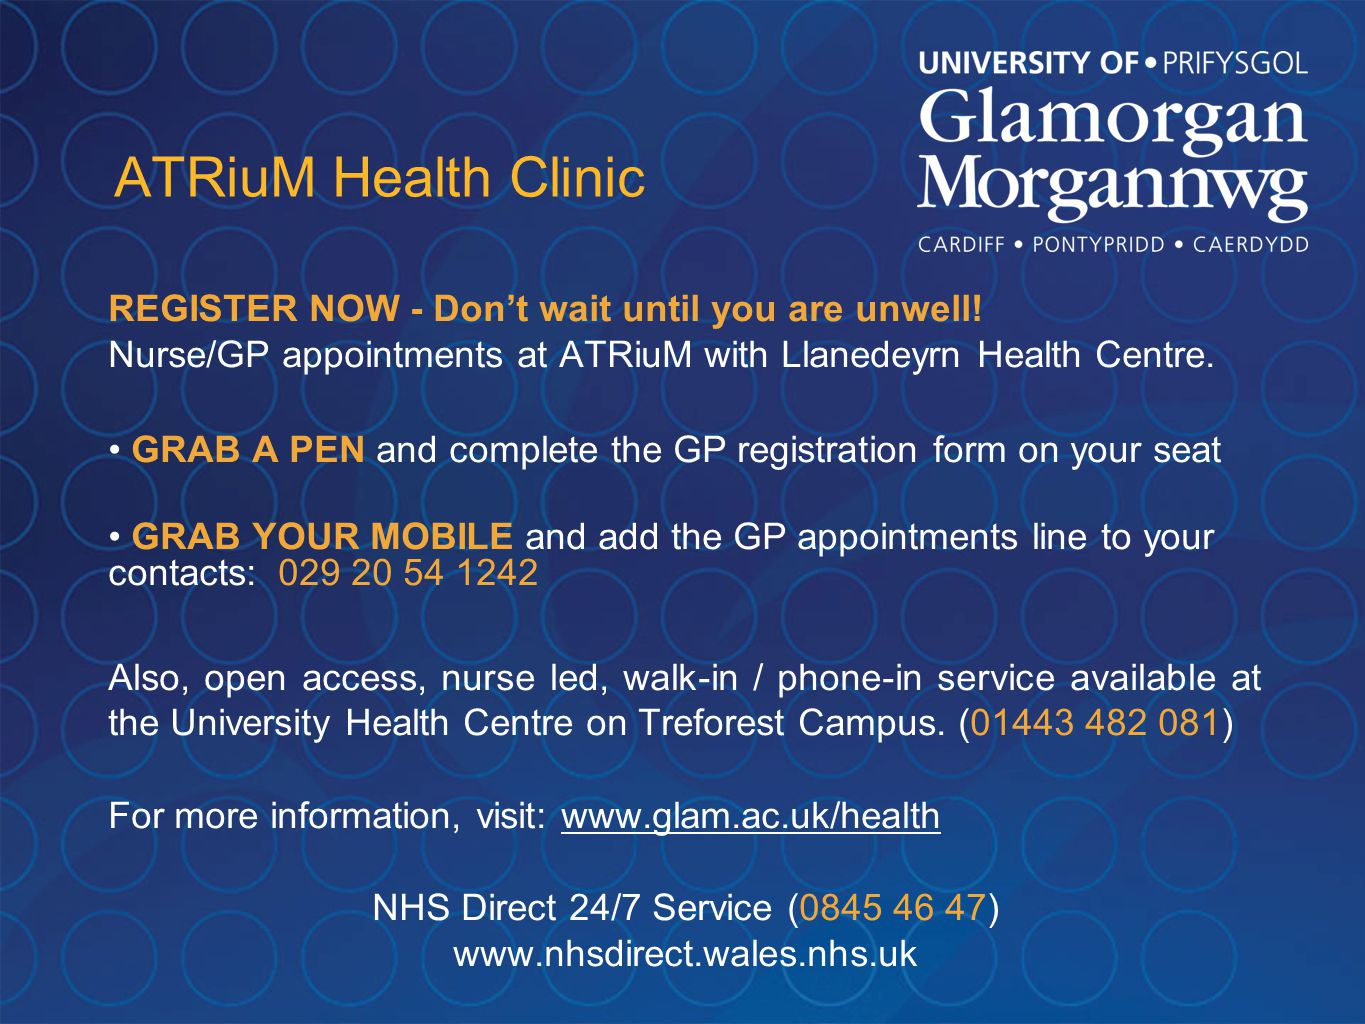 ATRiuM Health Clinic REGISTER NOW - Don't wait until you are unwell.